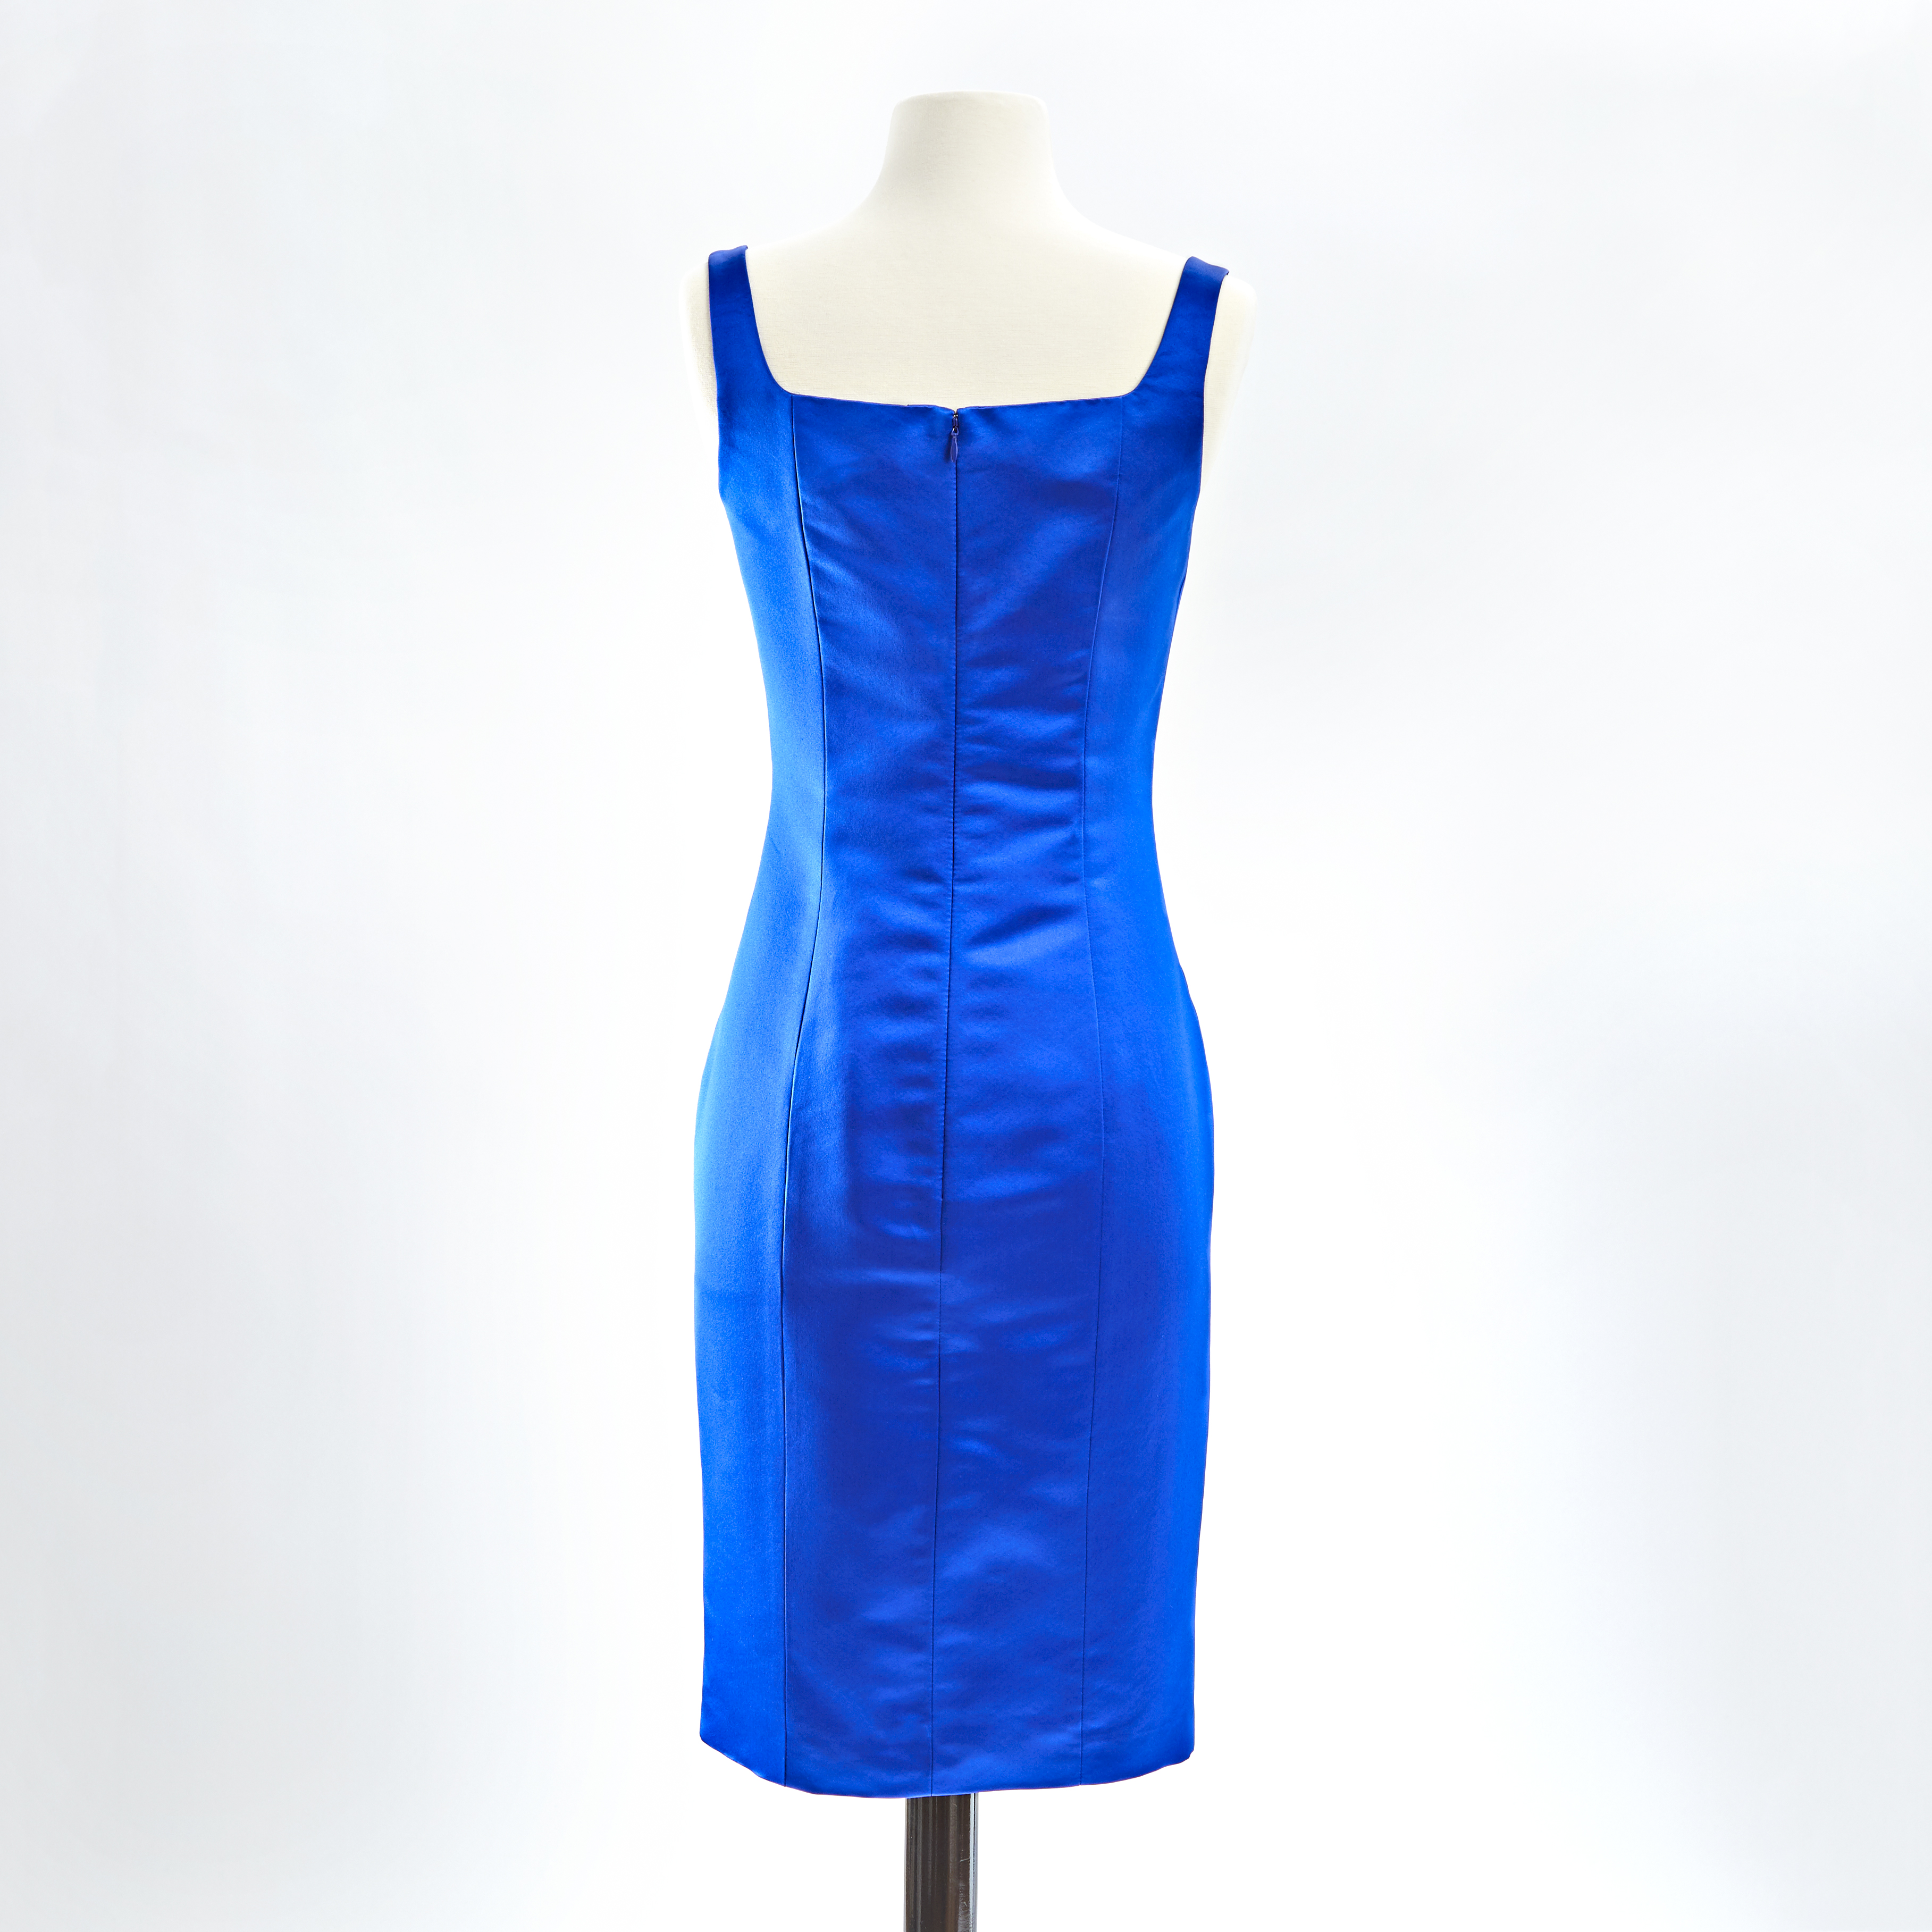 Sapphire blue duchess silk satin square neck sheath cocktail dress back view